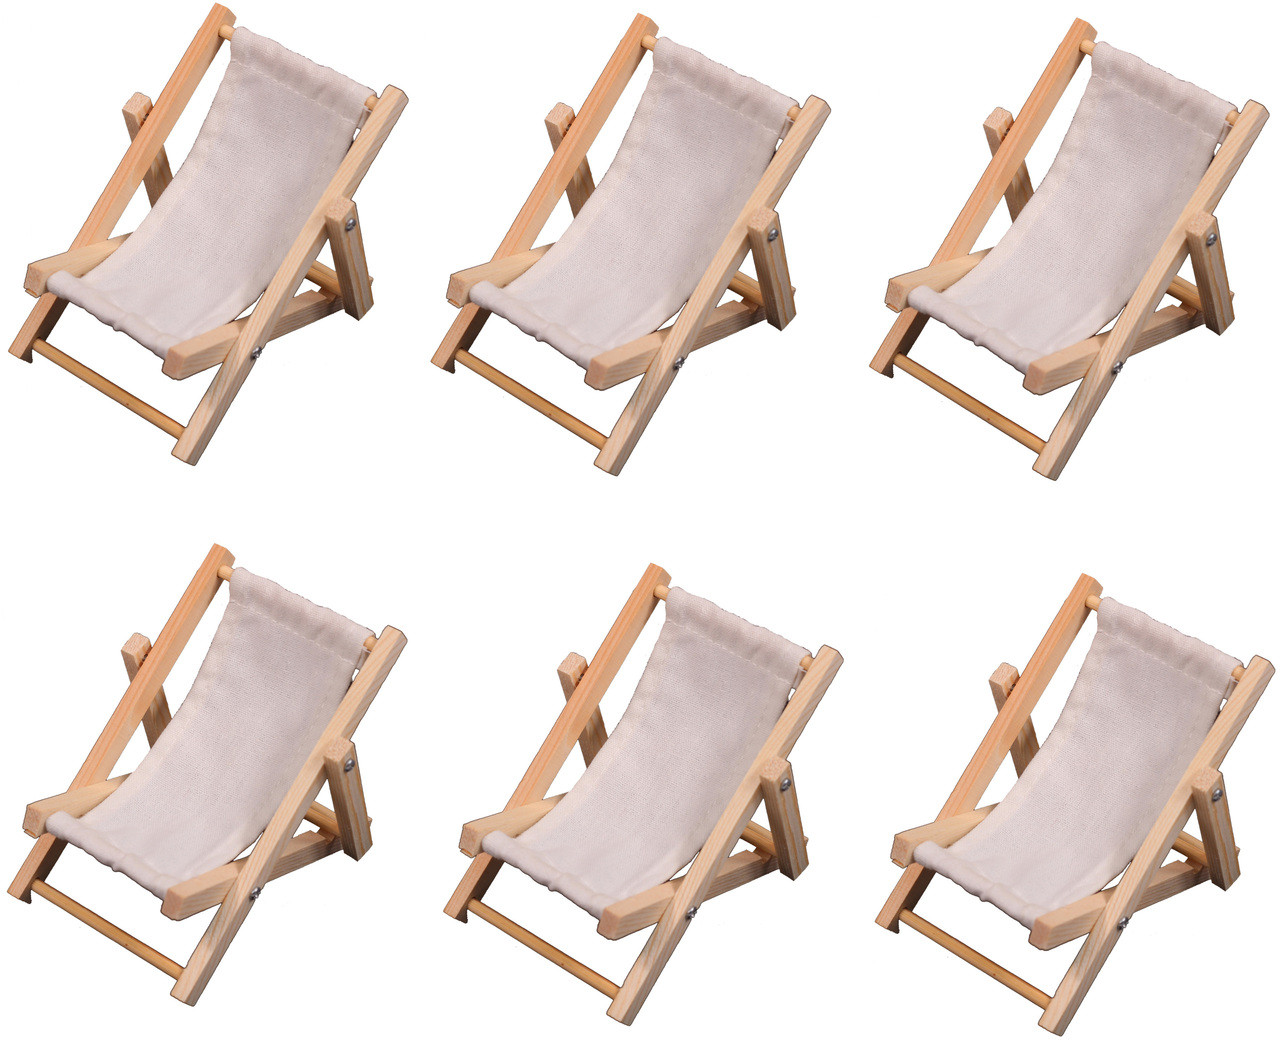 6 Mini Beach Lounge Chairs Folding Sling Style Wood With White Fabric For Wedding Favors Cake Toppers Table Markers Dollhouses Fairy Gardens